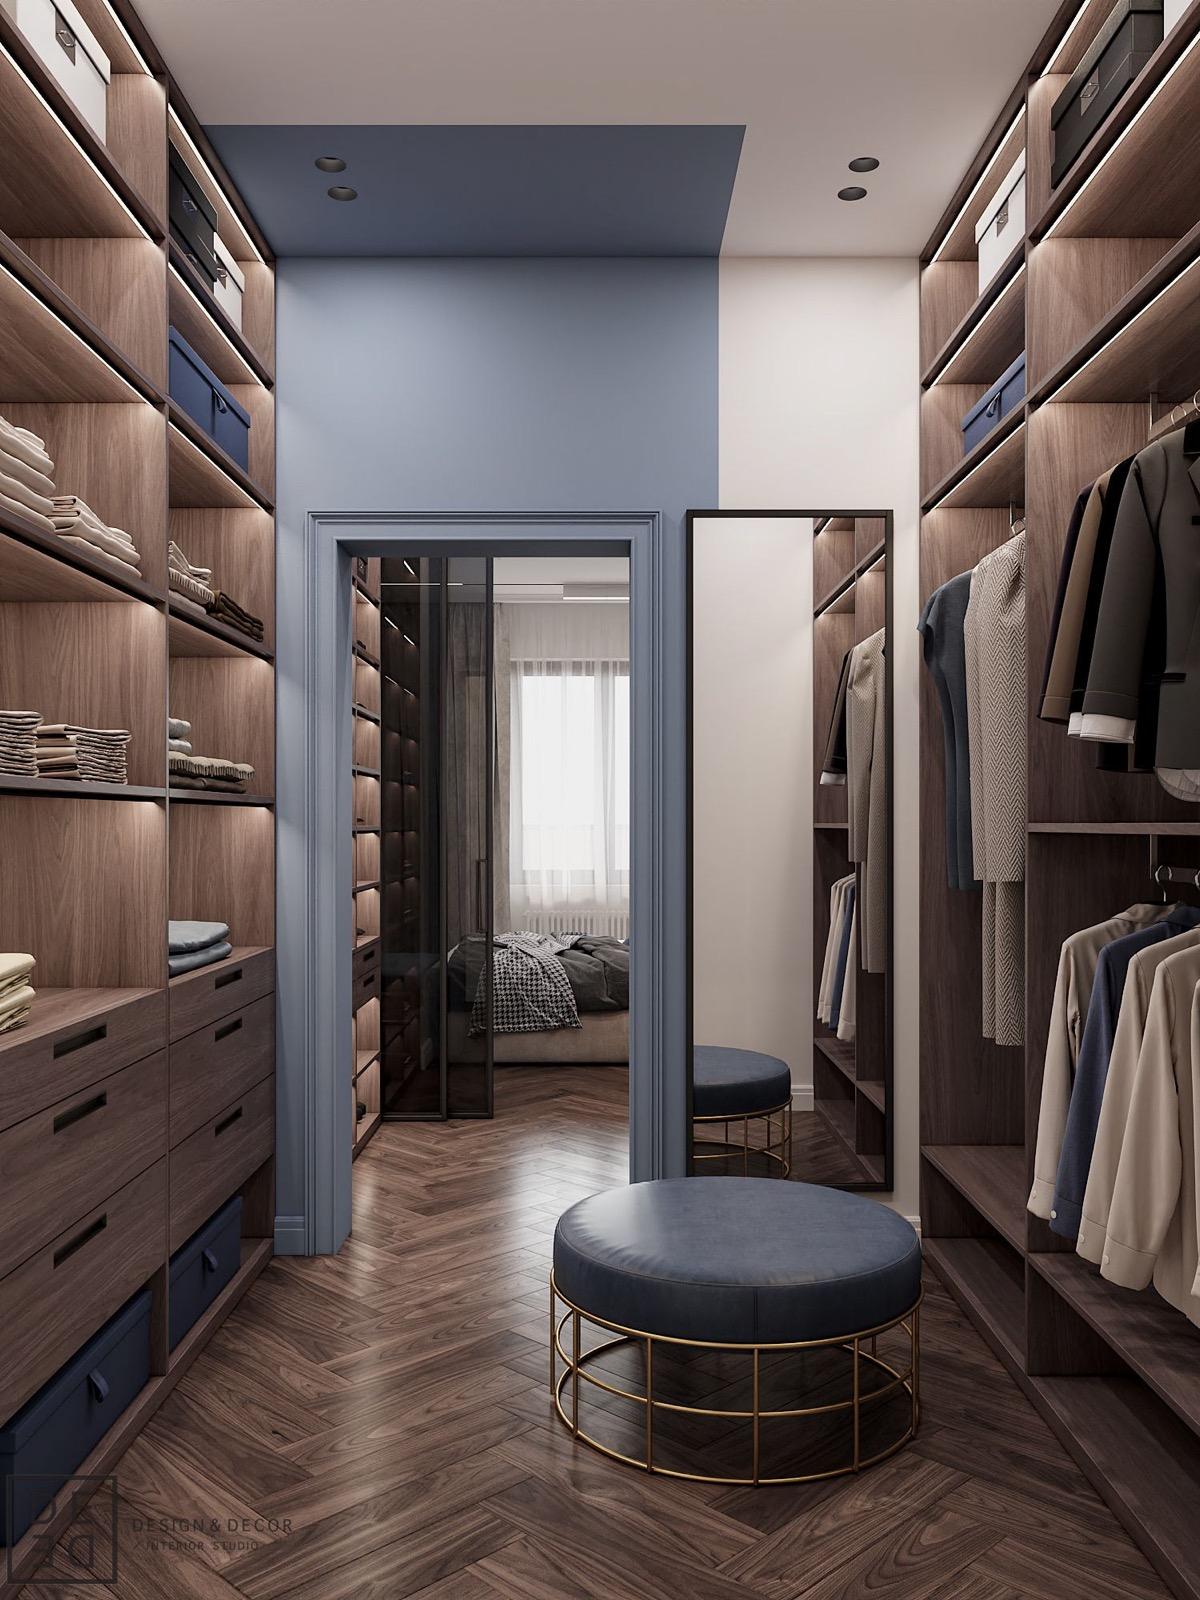 Image of: 40 Walk In Wardrobes That Will Give You Deep Closet Envy